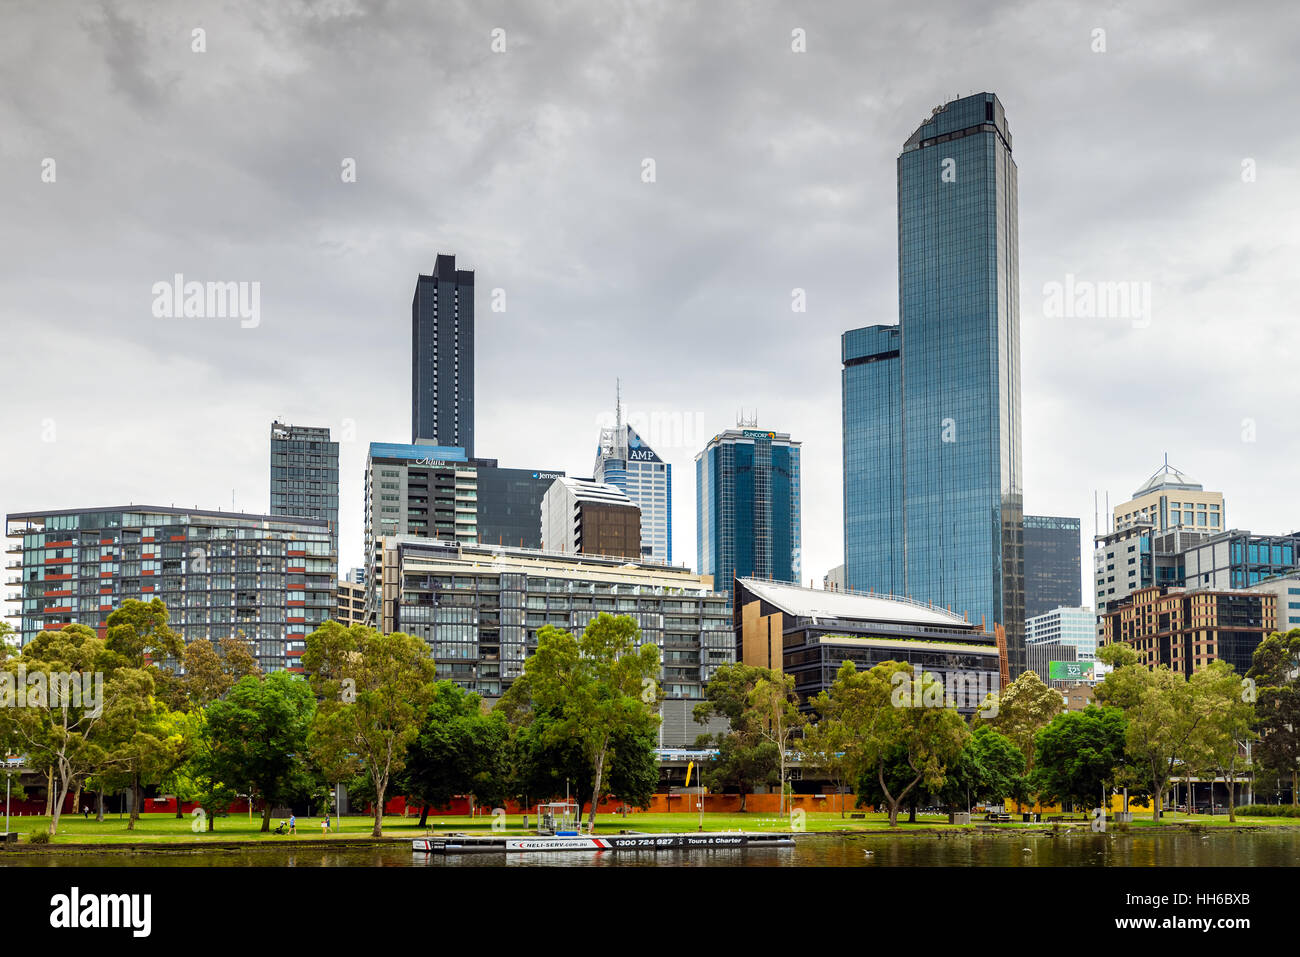 Melbourne City Business District view and the Yarra River - Stock Image